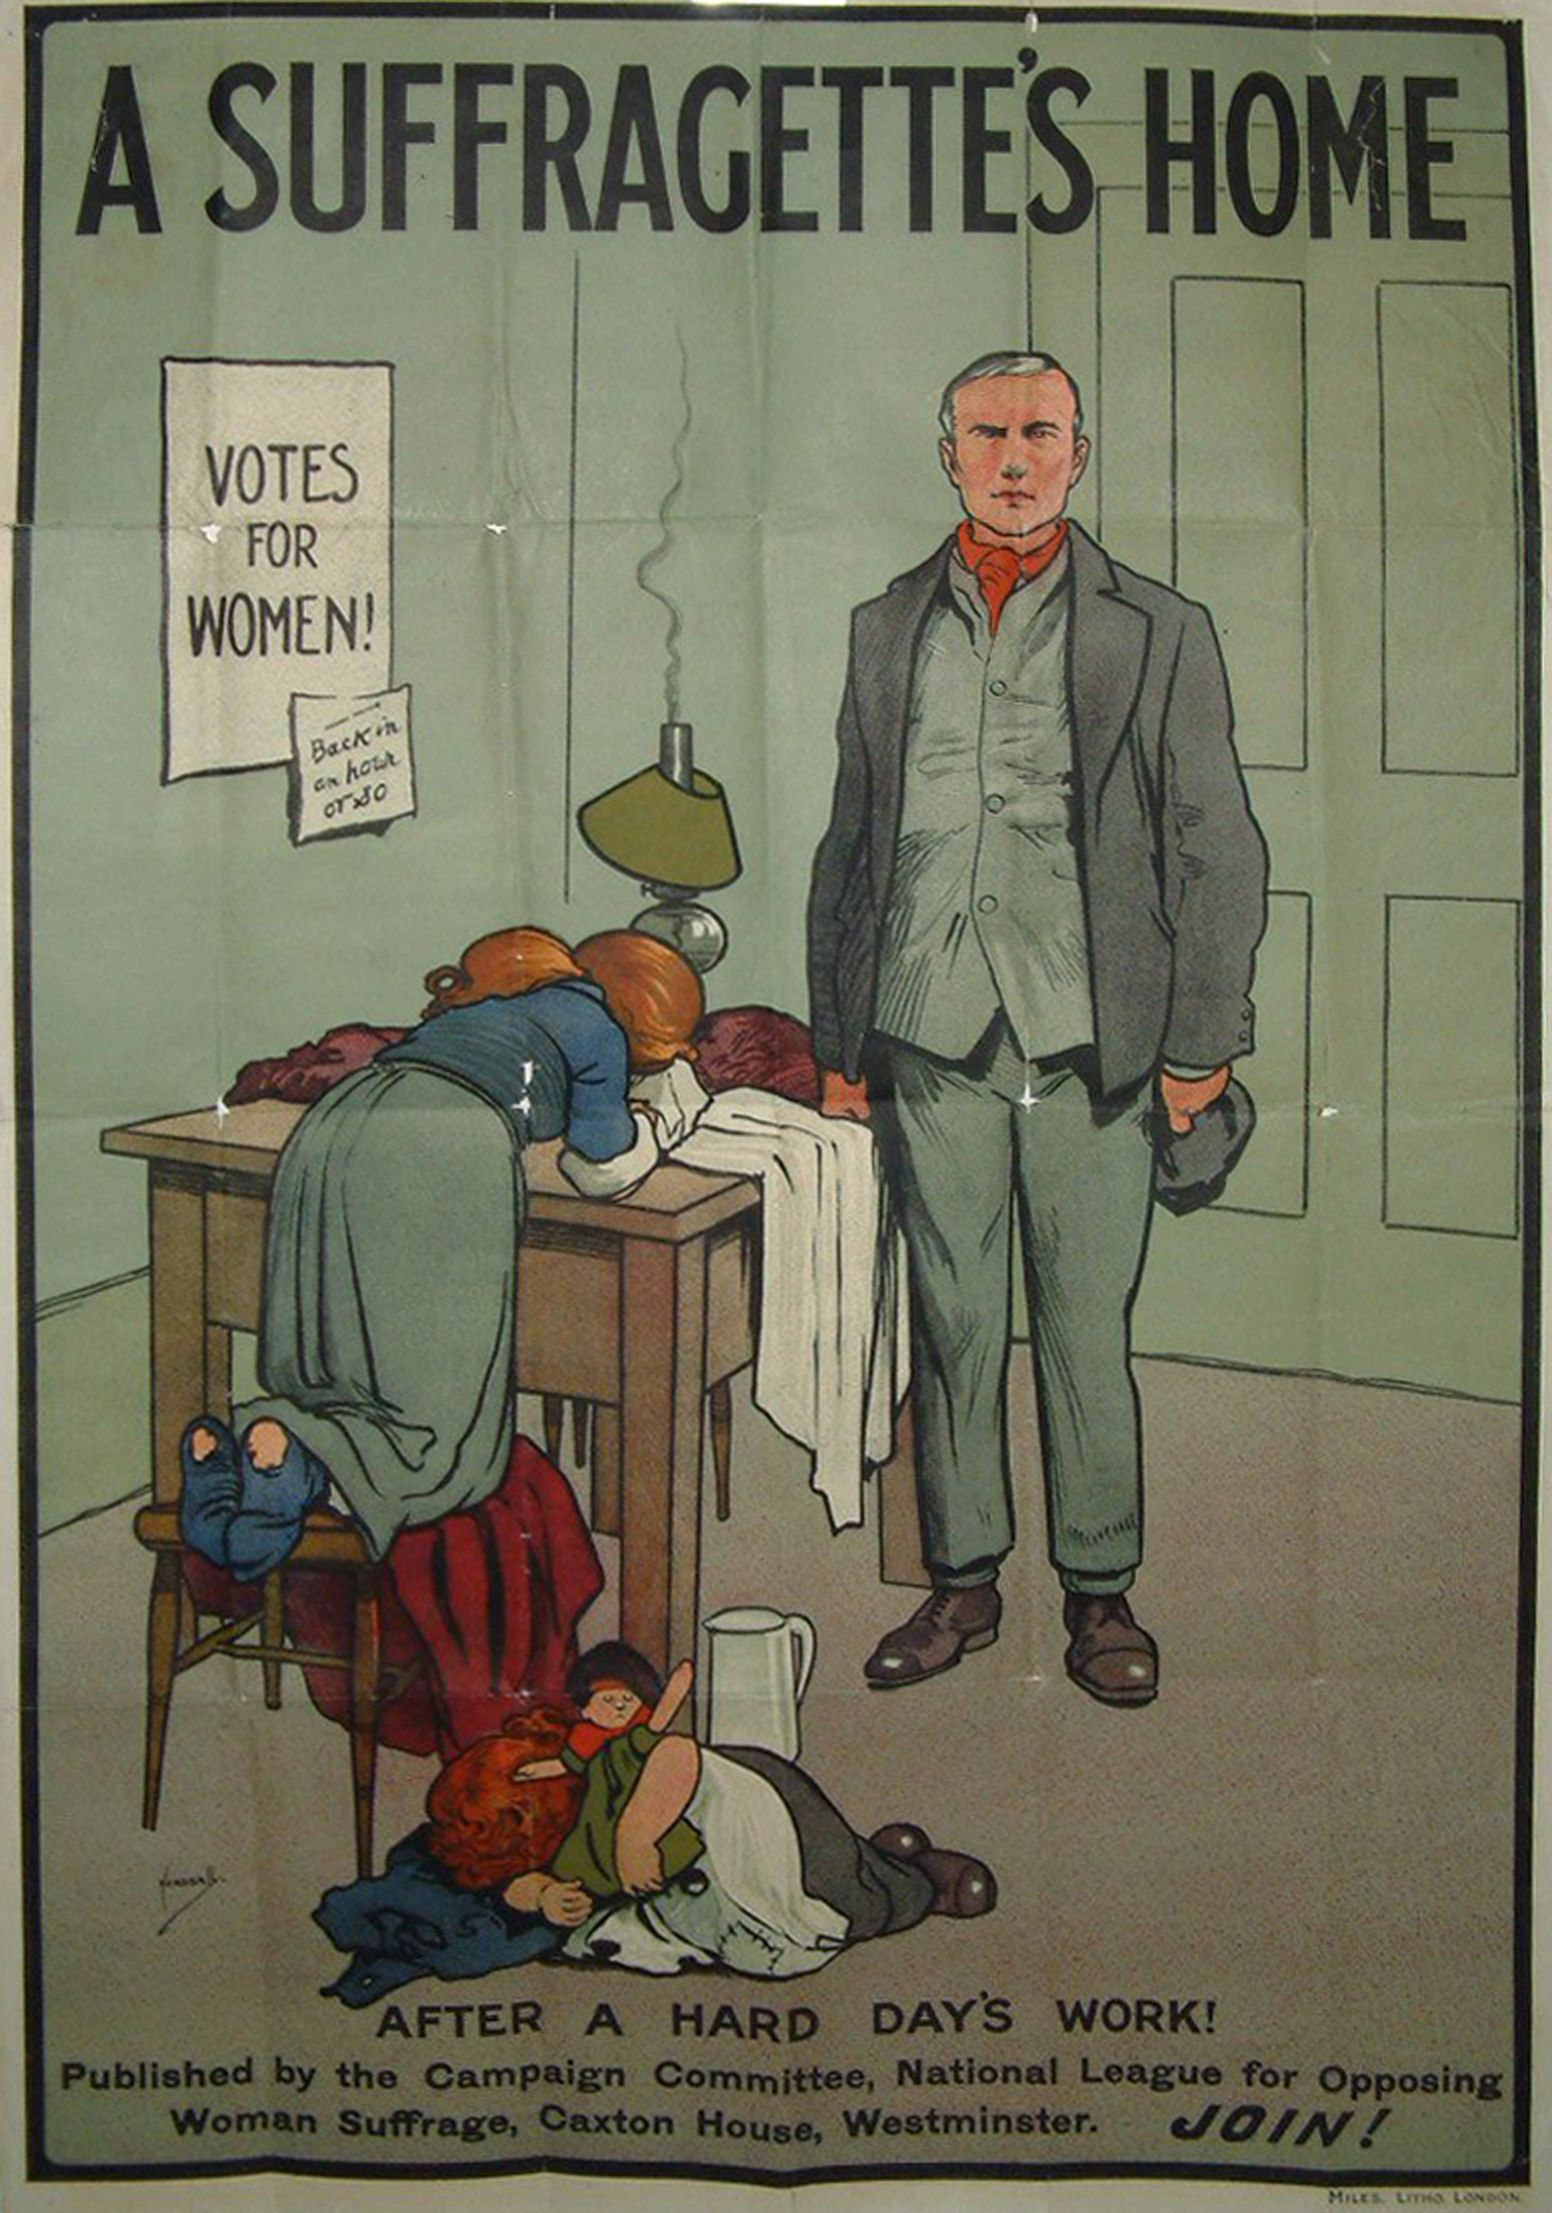 In This Anti Suffragette Poster A Suffragettes Home Is Depicted The Poster Is Trying To Get Across The Idea That A Women Suffragette Suffrage Anti Suffrage